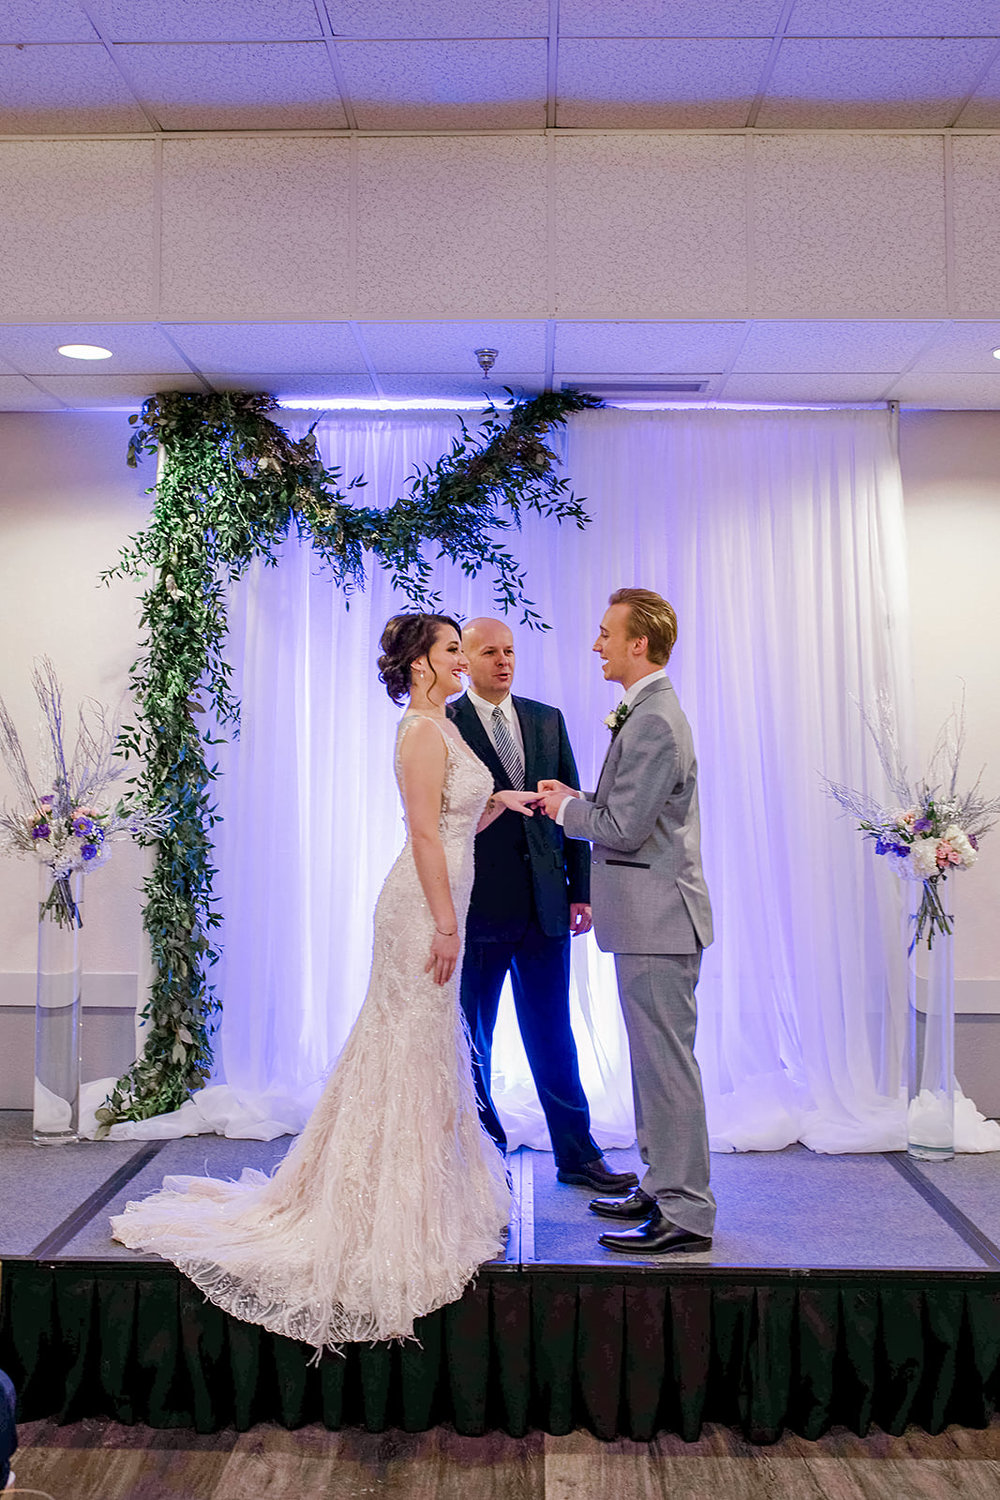 Royal Cliff officiant included in your wedding package | Photo by Rachel Graff Photography